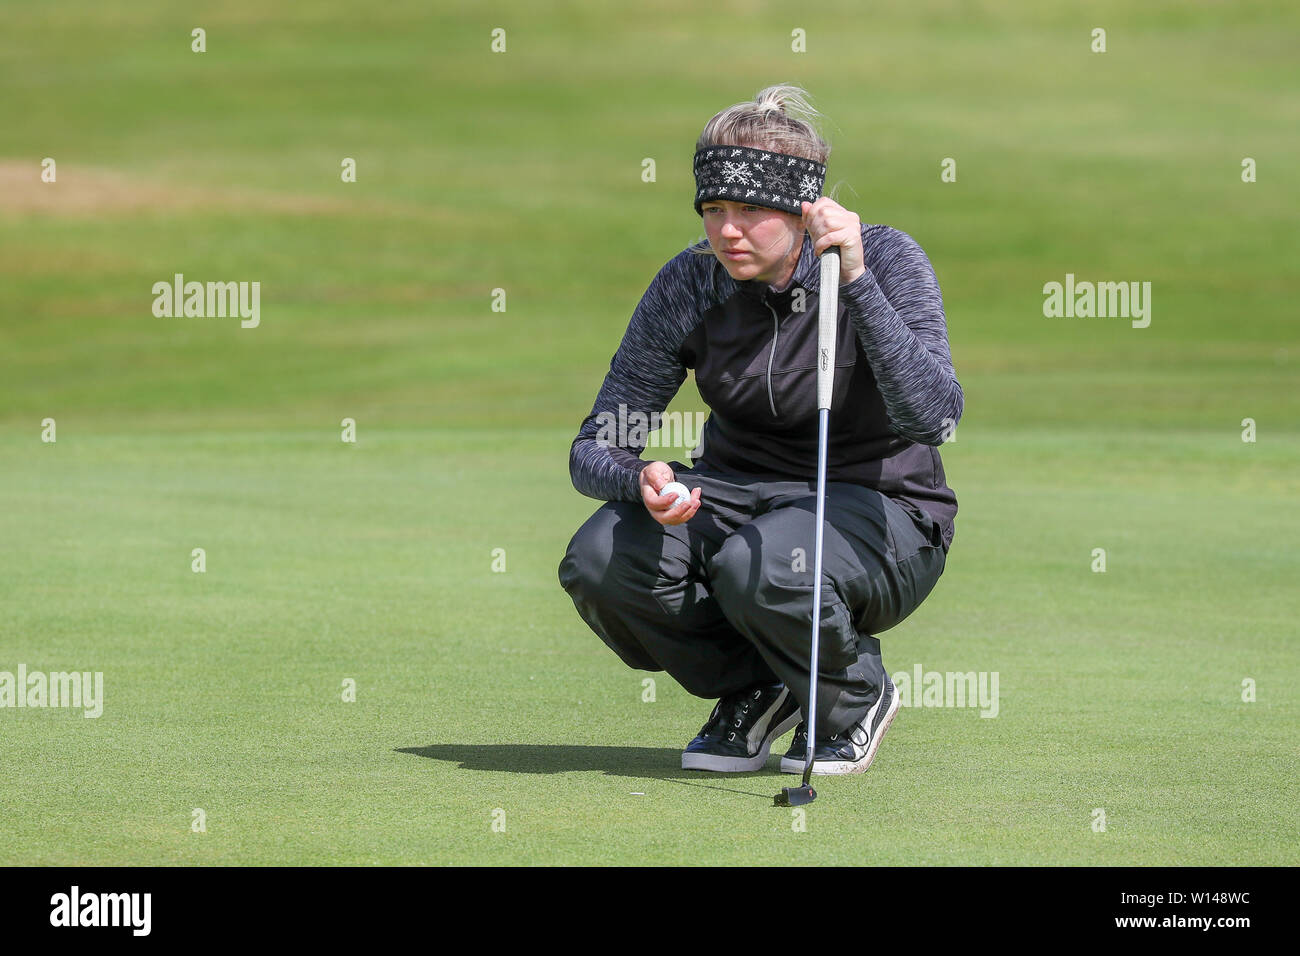 Troon, Scotland, UK. 30th June 2019. On the final day of the Competition the remaining 8 golfers, playing matchplay golf competed over Barassie Links Golf course, Troon in blustery wind and squally rain conditions to try and win the Championship Cup and the Clark Rosebowl. Image of KIMBERLEY BEVERIDGE representing Aboyne Golf club lining up a putt on the 14th green Credit: Findlay/Alamy Live News - Stock Image